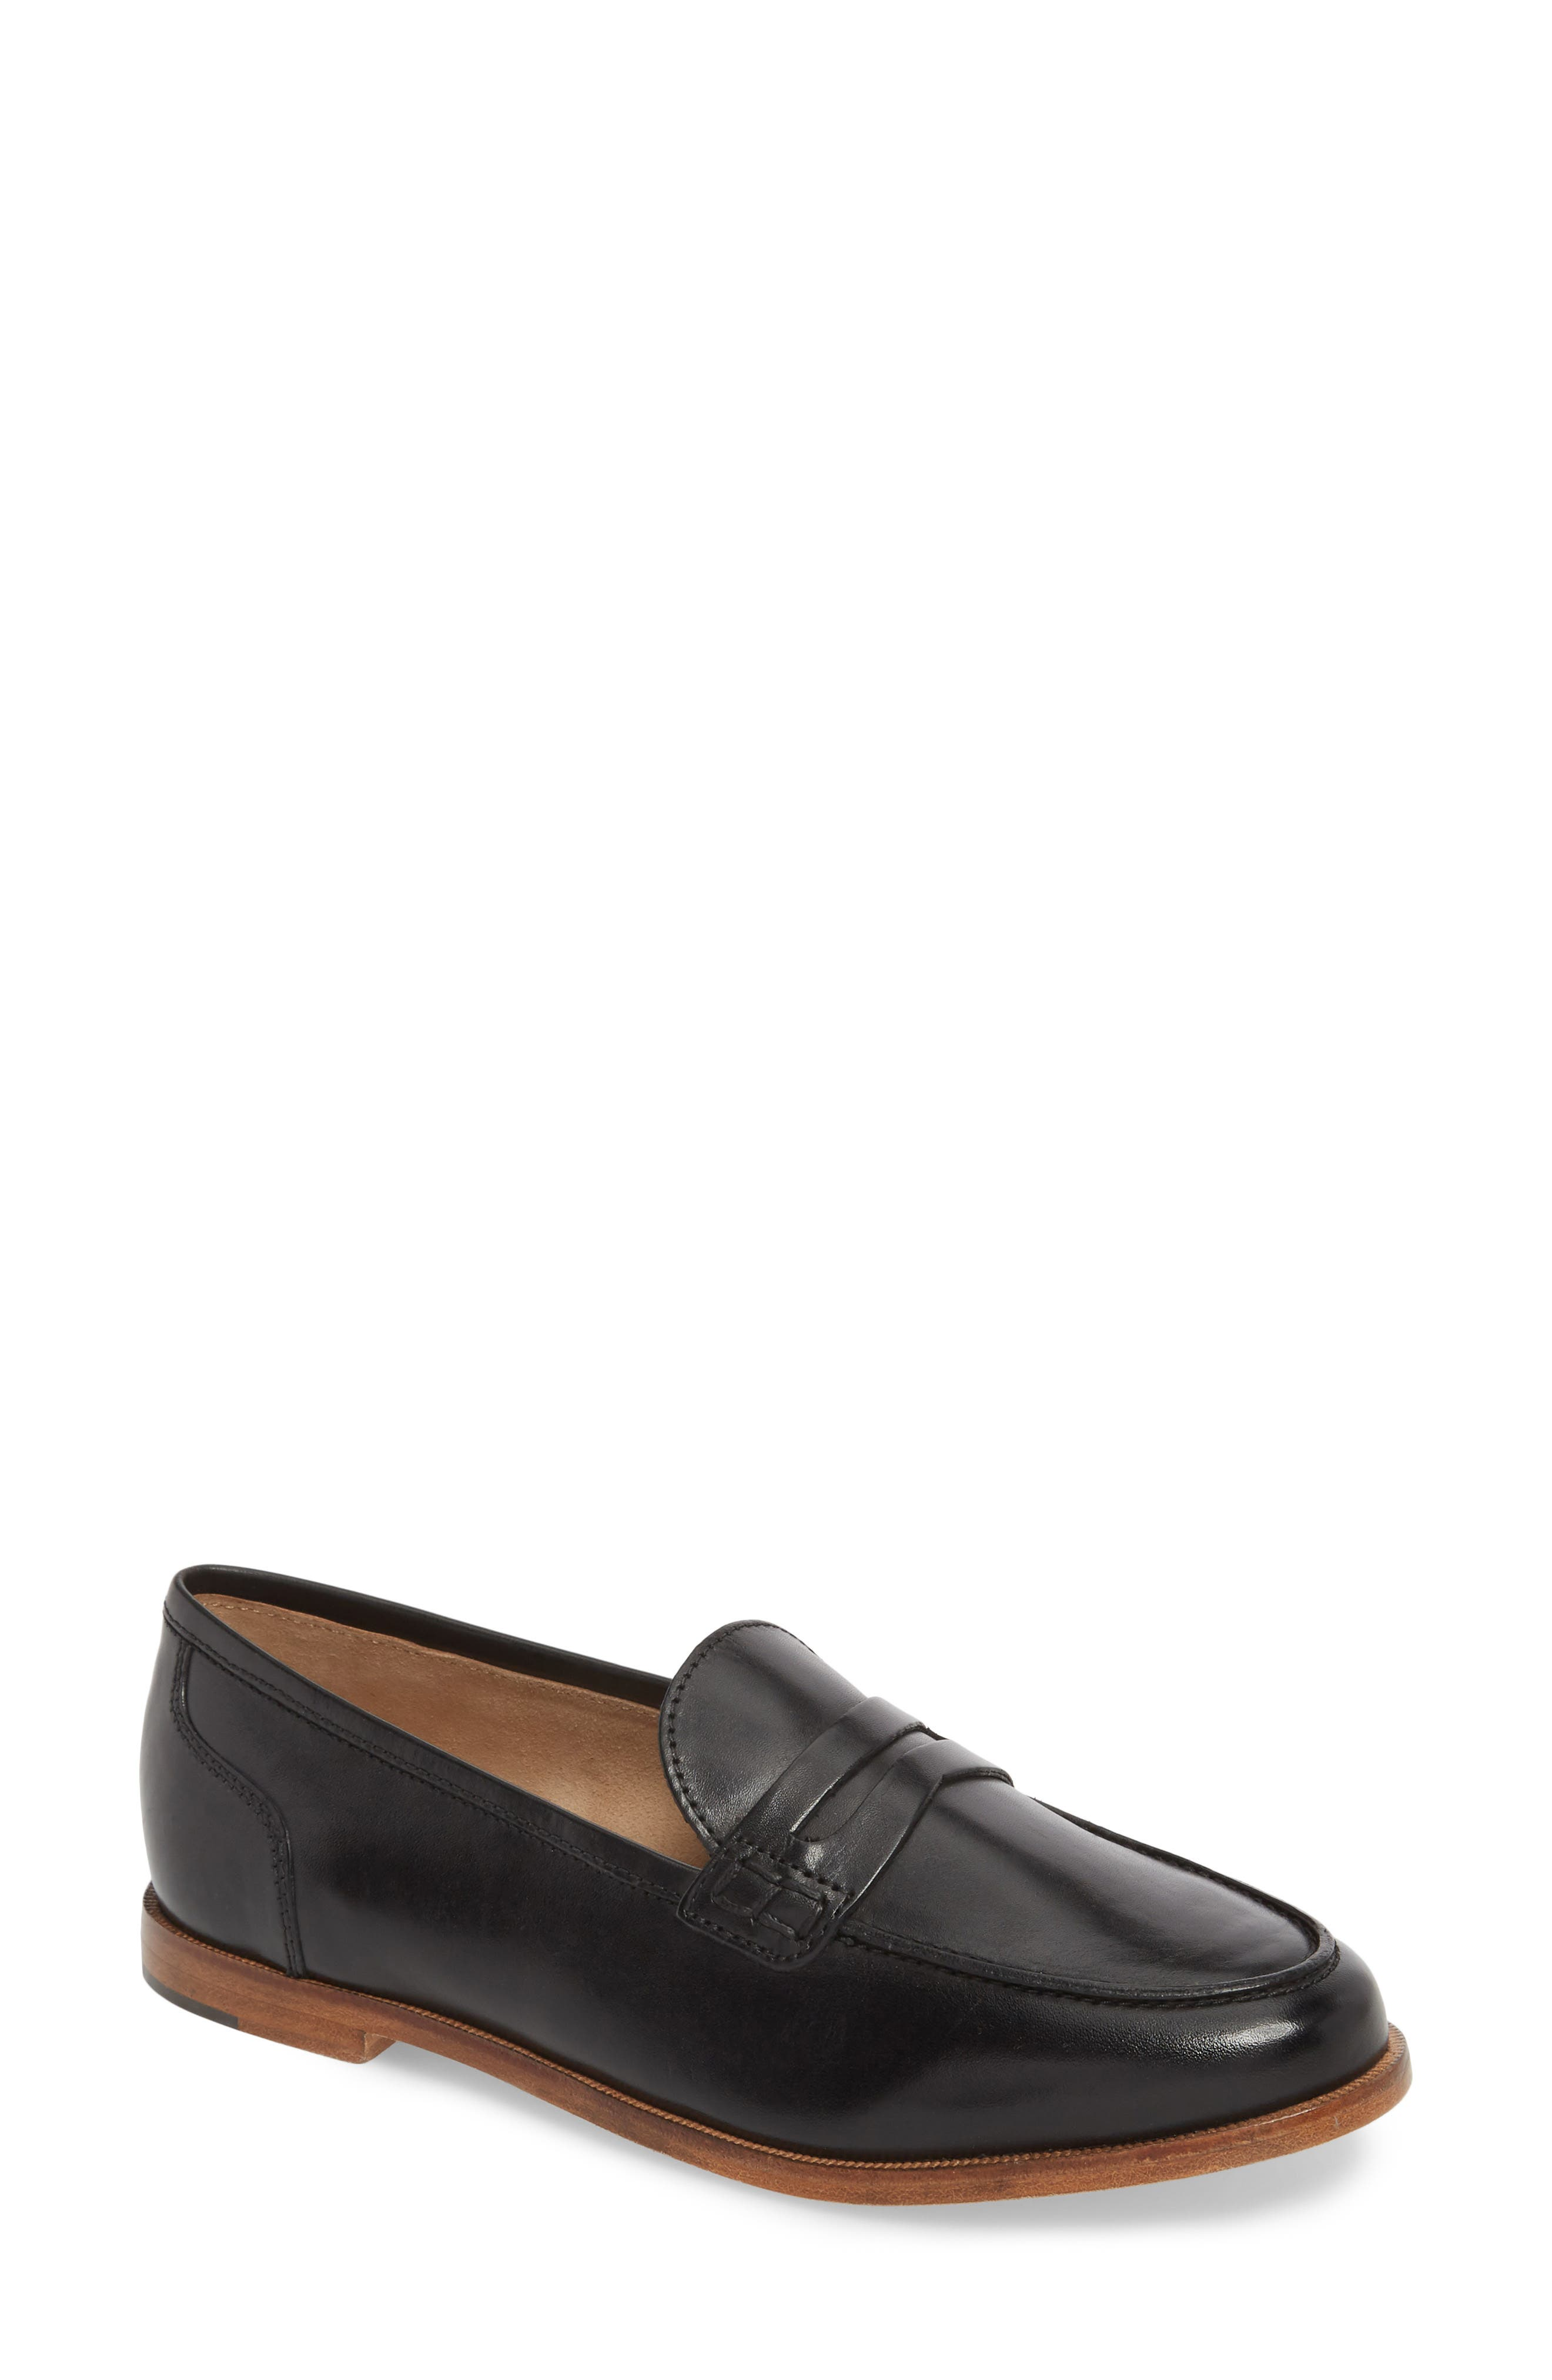 J.CREW, Ryan Penny Loafer, Main thumbnail 1, color, BLACK LEATHER